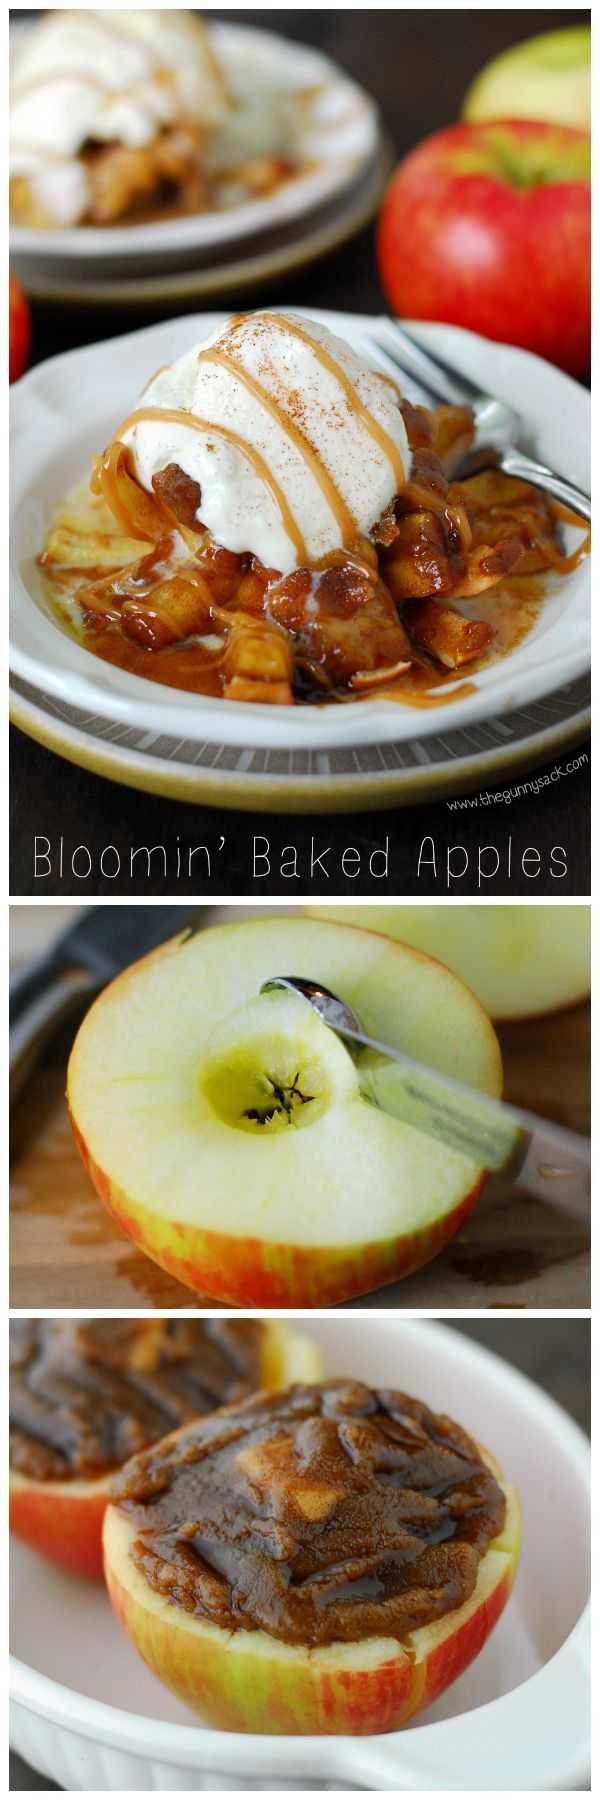 Bloomin' Baked Apples: If you haven't tried this recipe that went viral on Facebook and was even seen on the Rachel Ray Show, you NEED to try it now! Baked apples with a caramel center and brown sugar topping.: